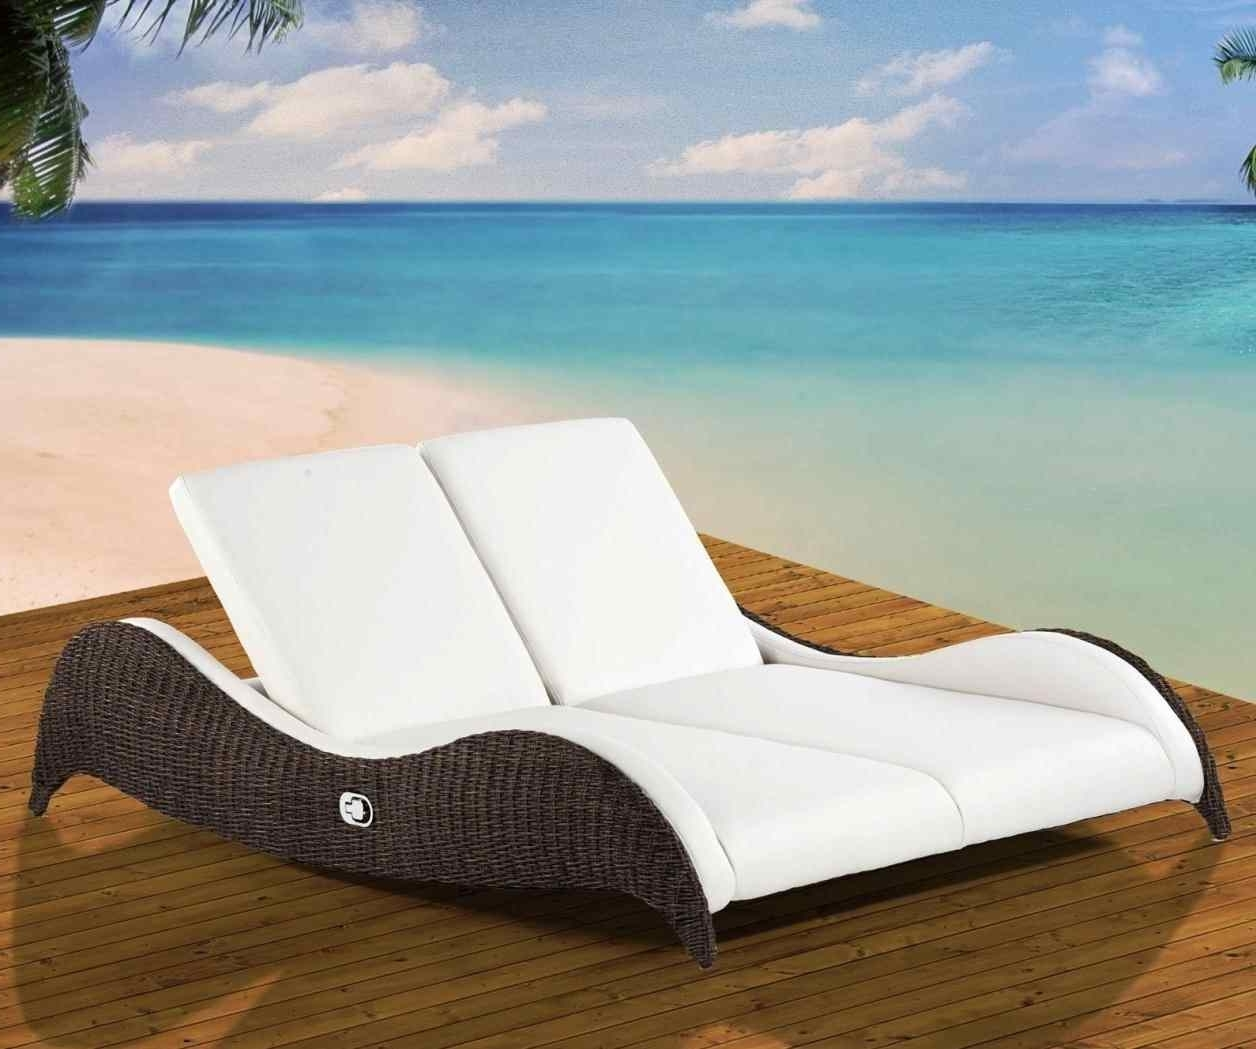 Well Known Chaise Lounge Chairs At Sears Pertaining To Lounge Chair : Lounge Pool Chairs Walmart S Home Decorating Chair (View 13 of 15)